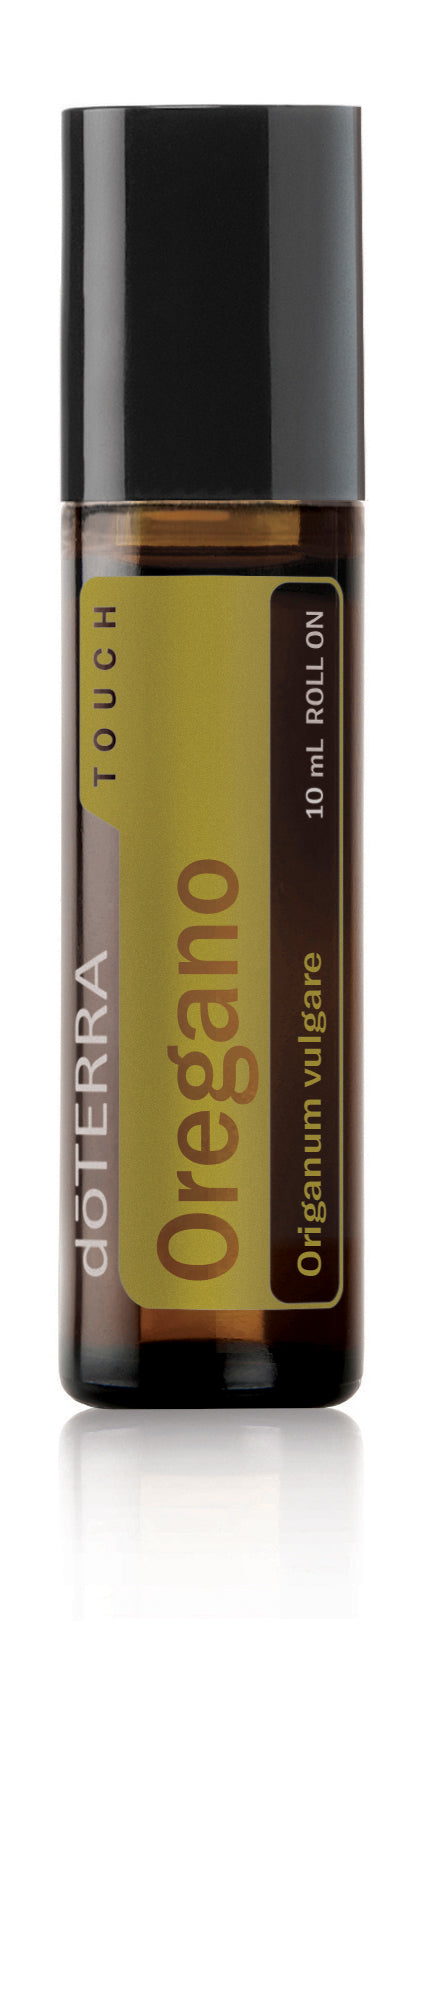 dōTERRA Oregano Touch 10ml - CUSTOM AND ESSENTIALS